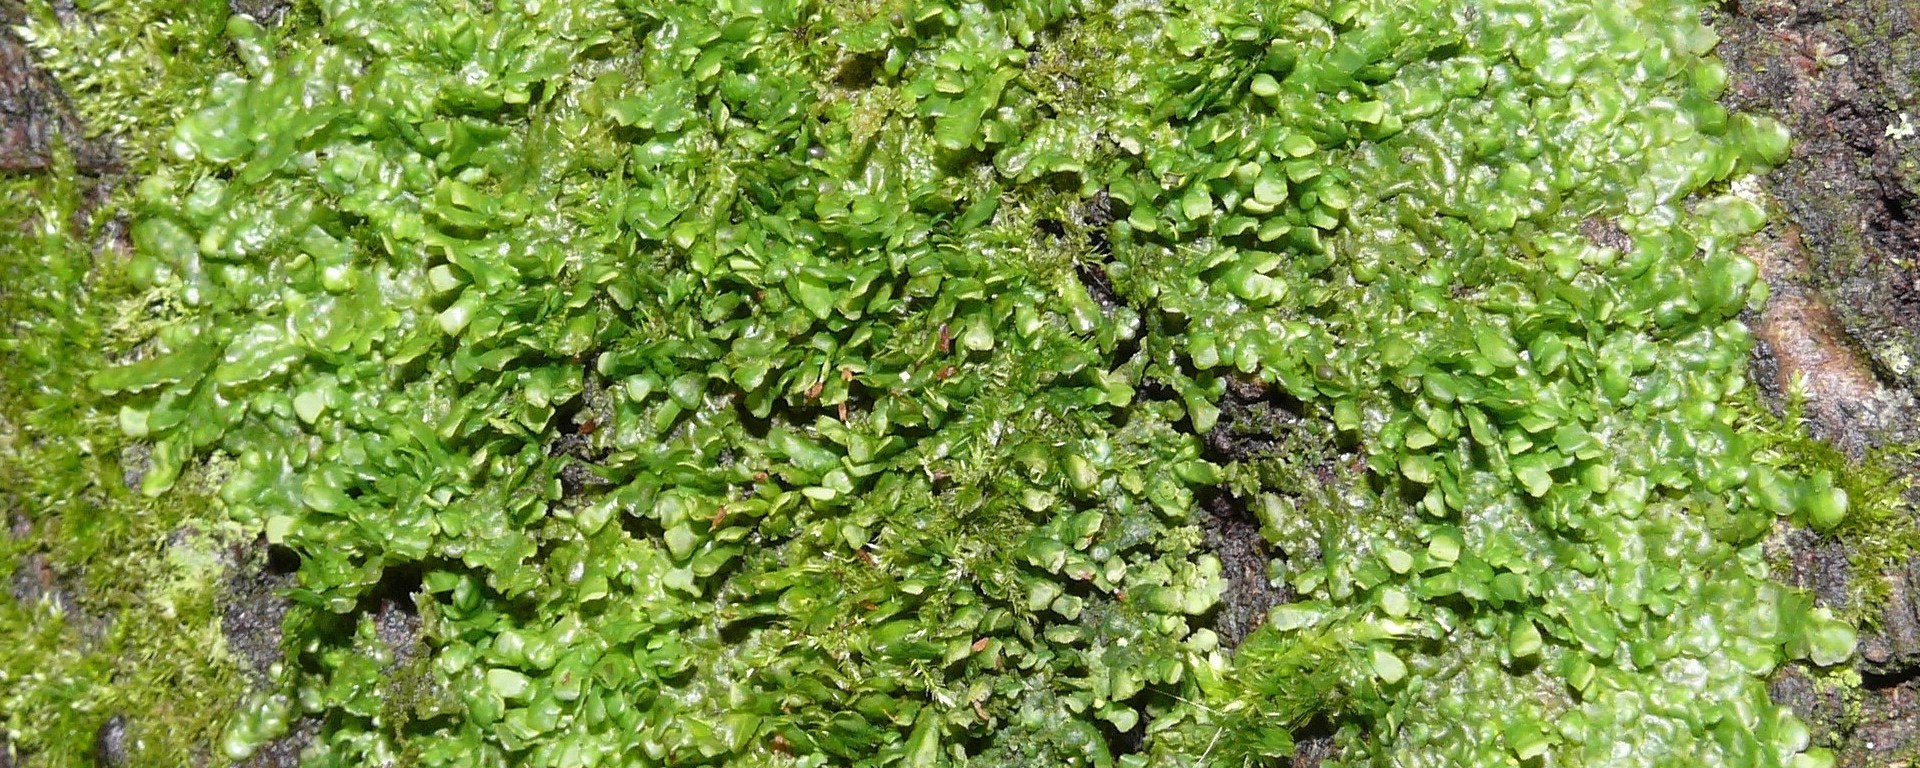 Liverwort as an alternative to medical cannabis - Science in